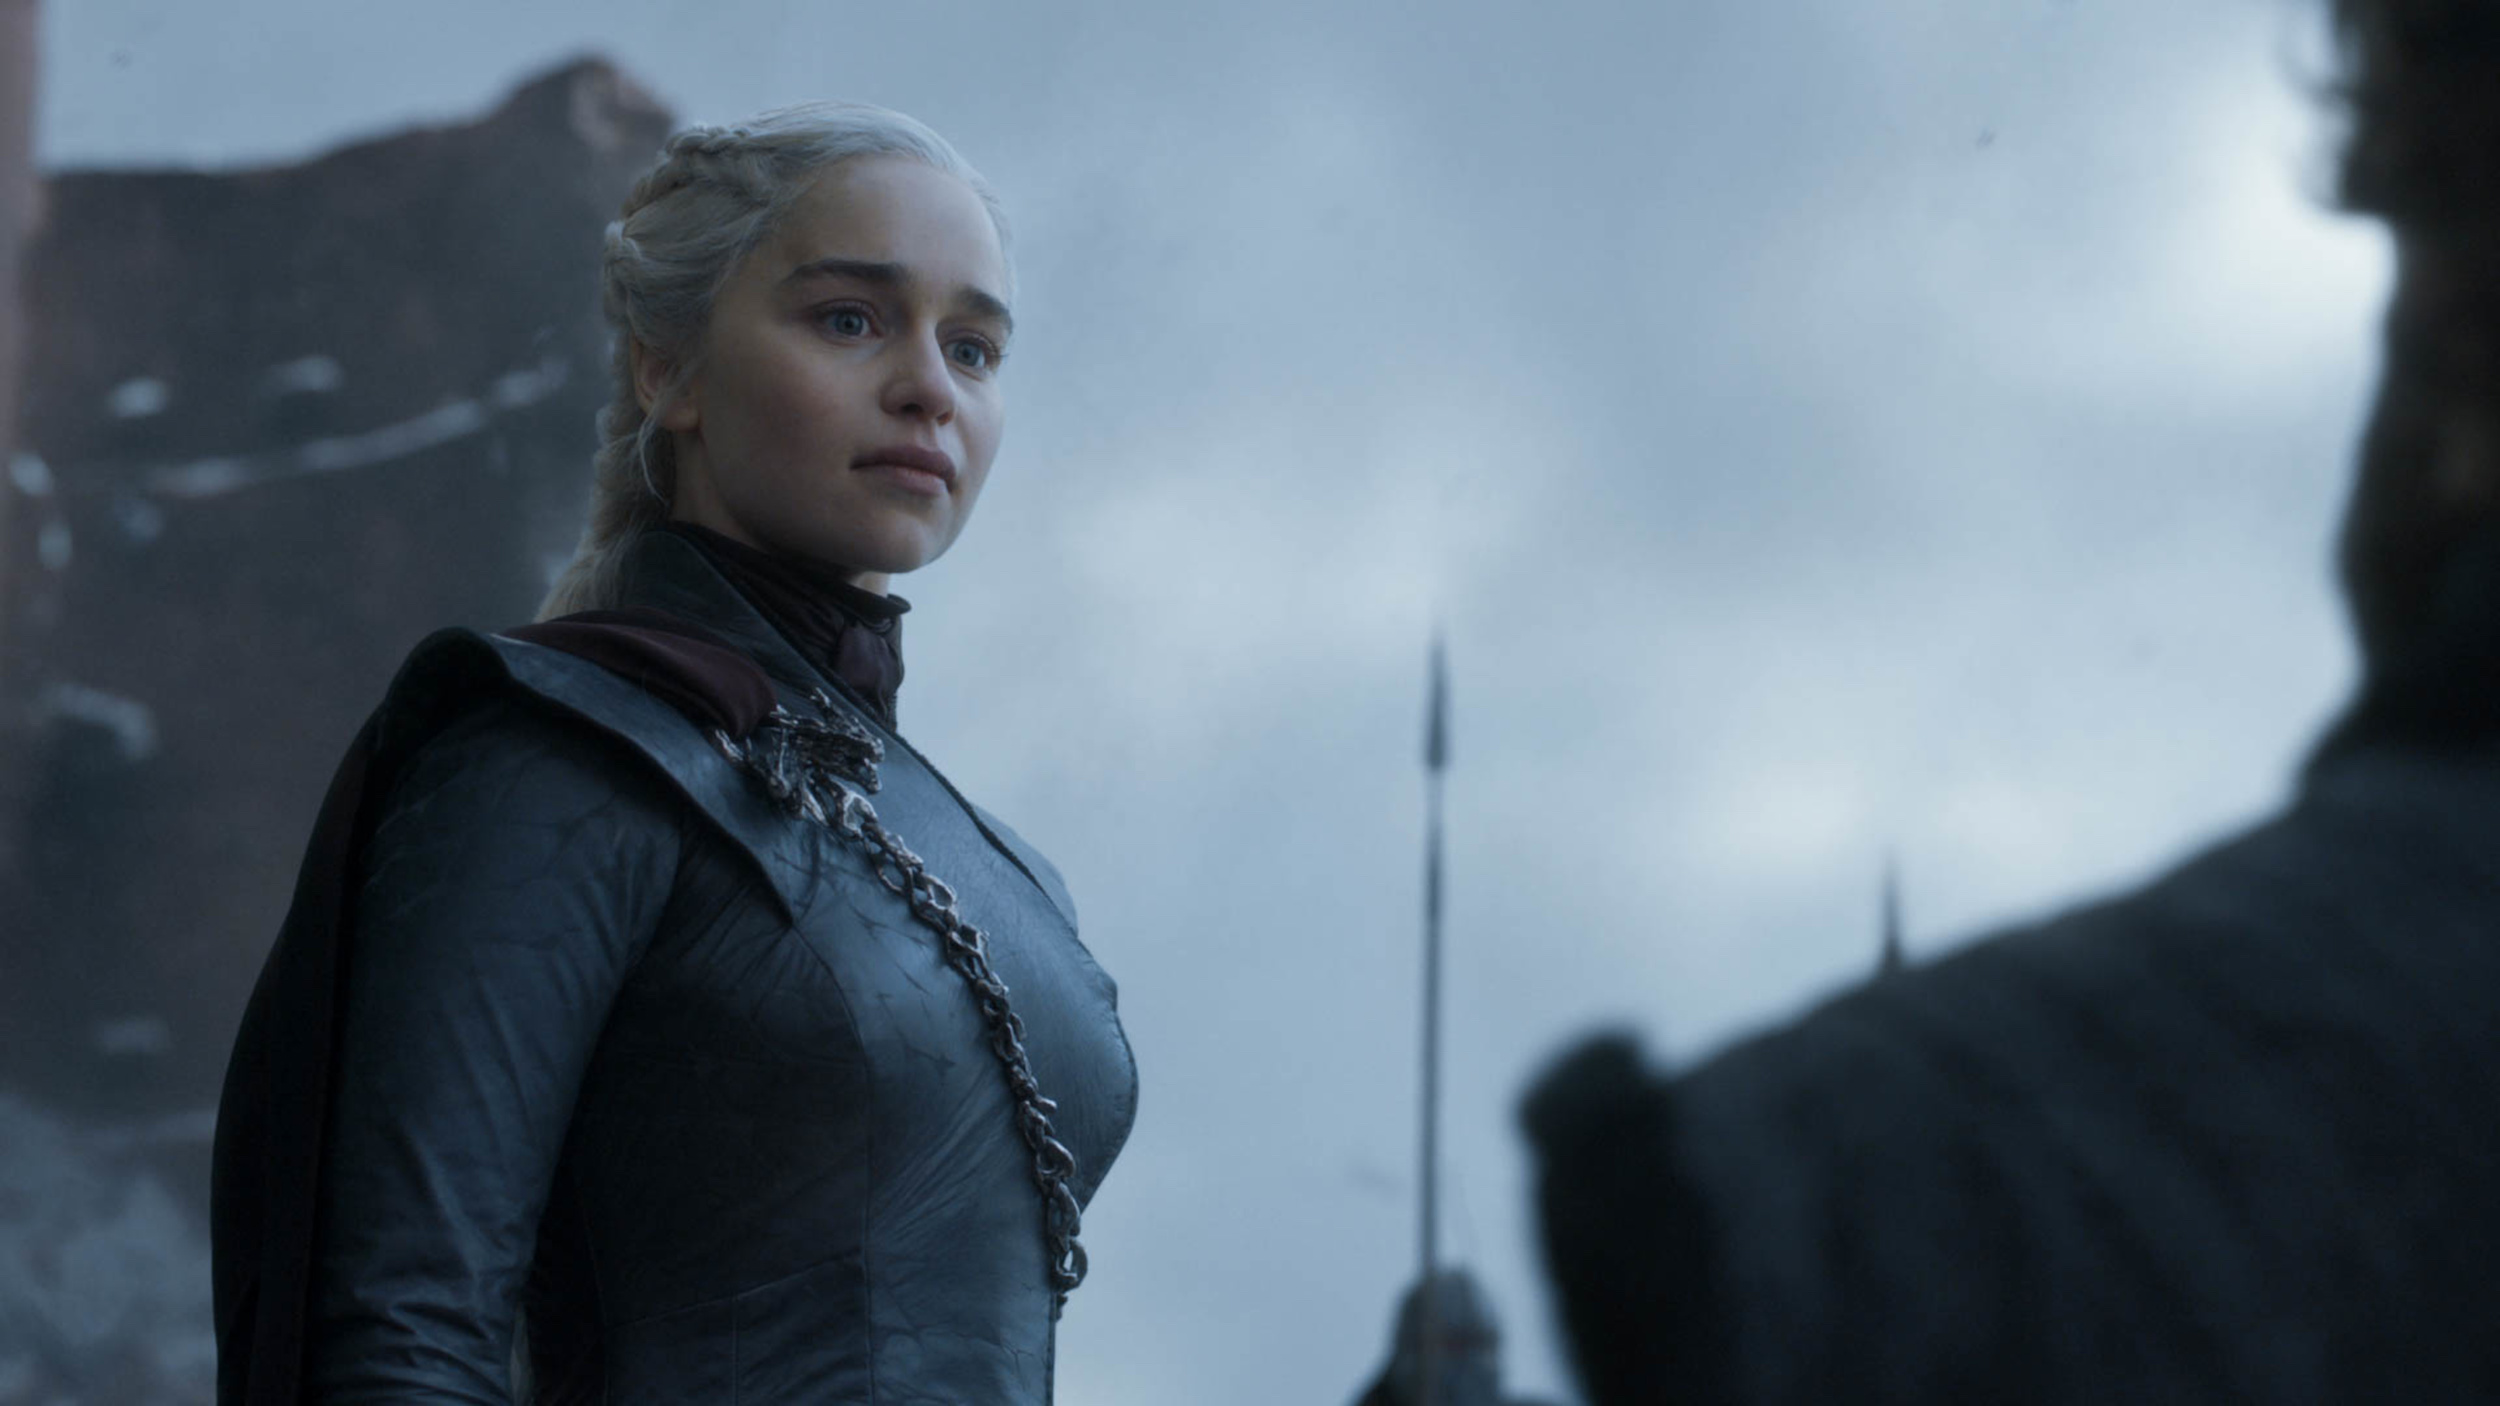 Emilia Clarke reacts to Daenerys Targaryen's fate: 'I didn't see this coming'